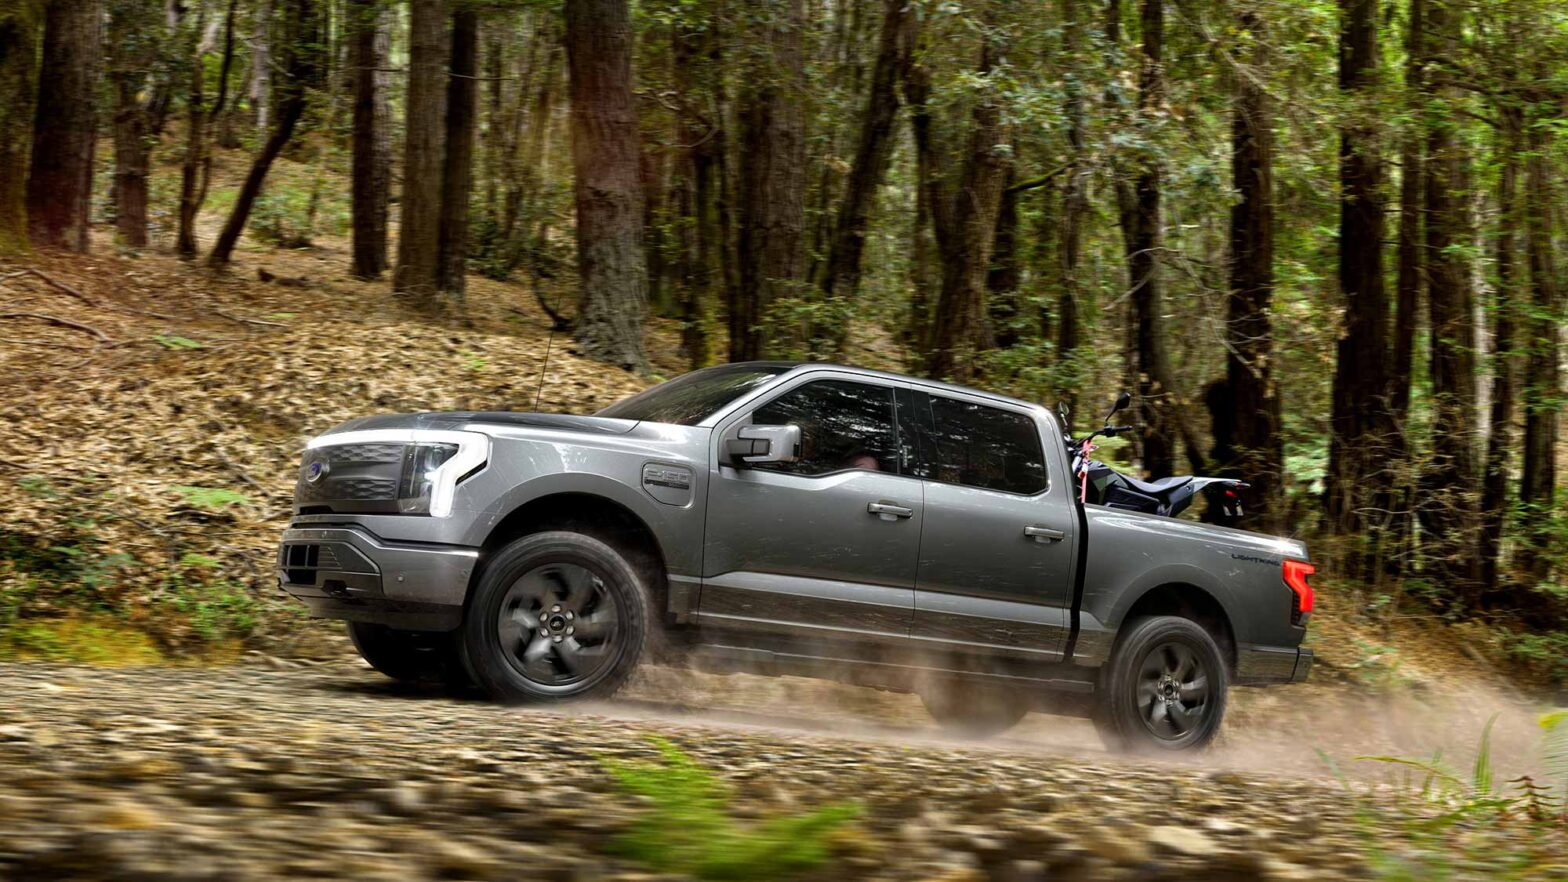 2022 Ford F-150 Lightning Electric Truck